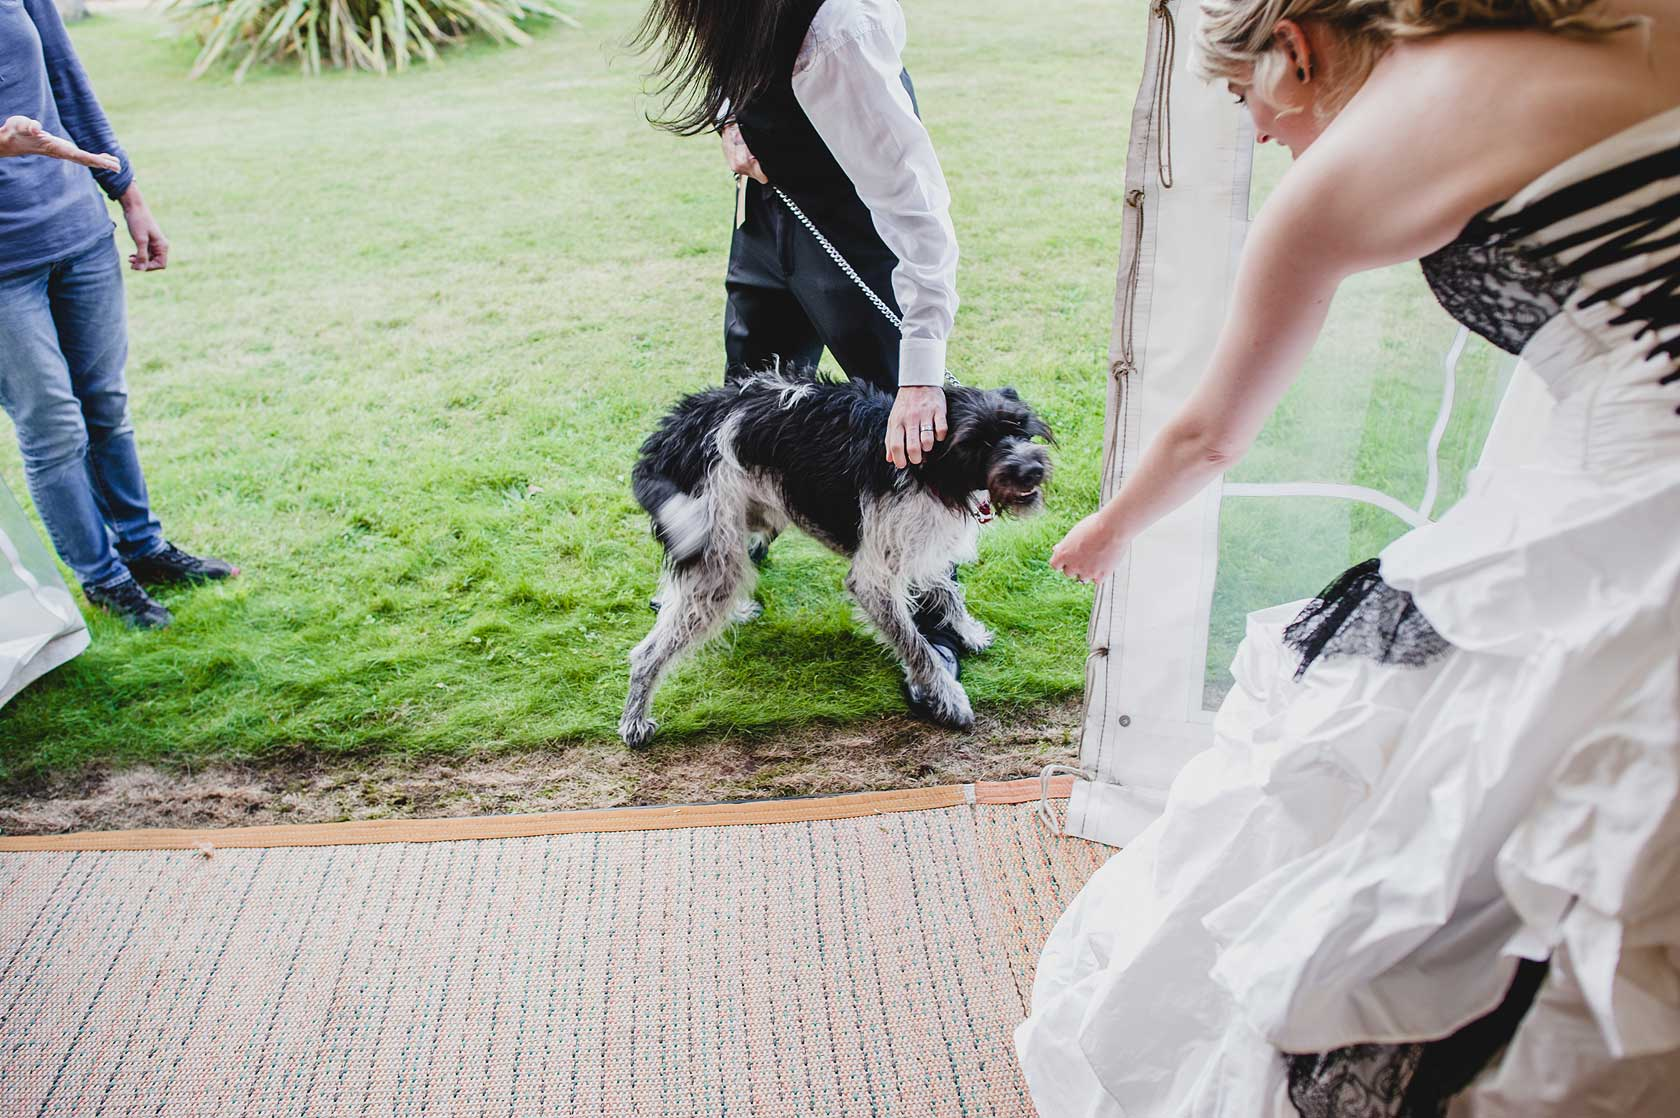 Reportage Wedding Photography at Butley Priory